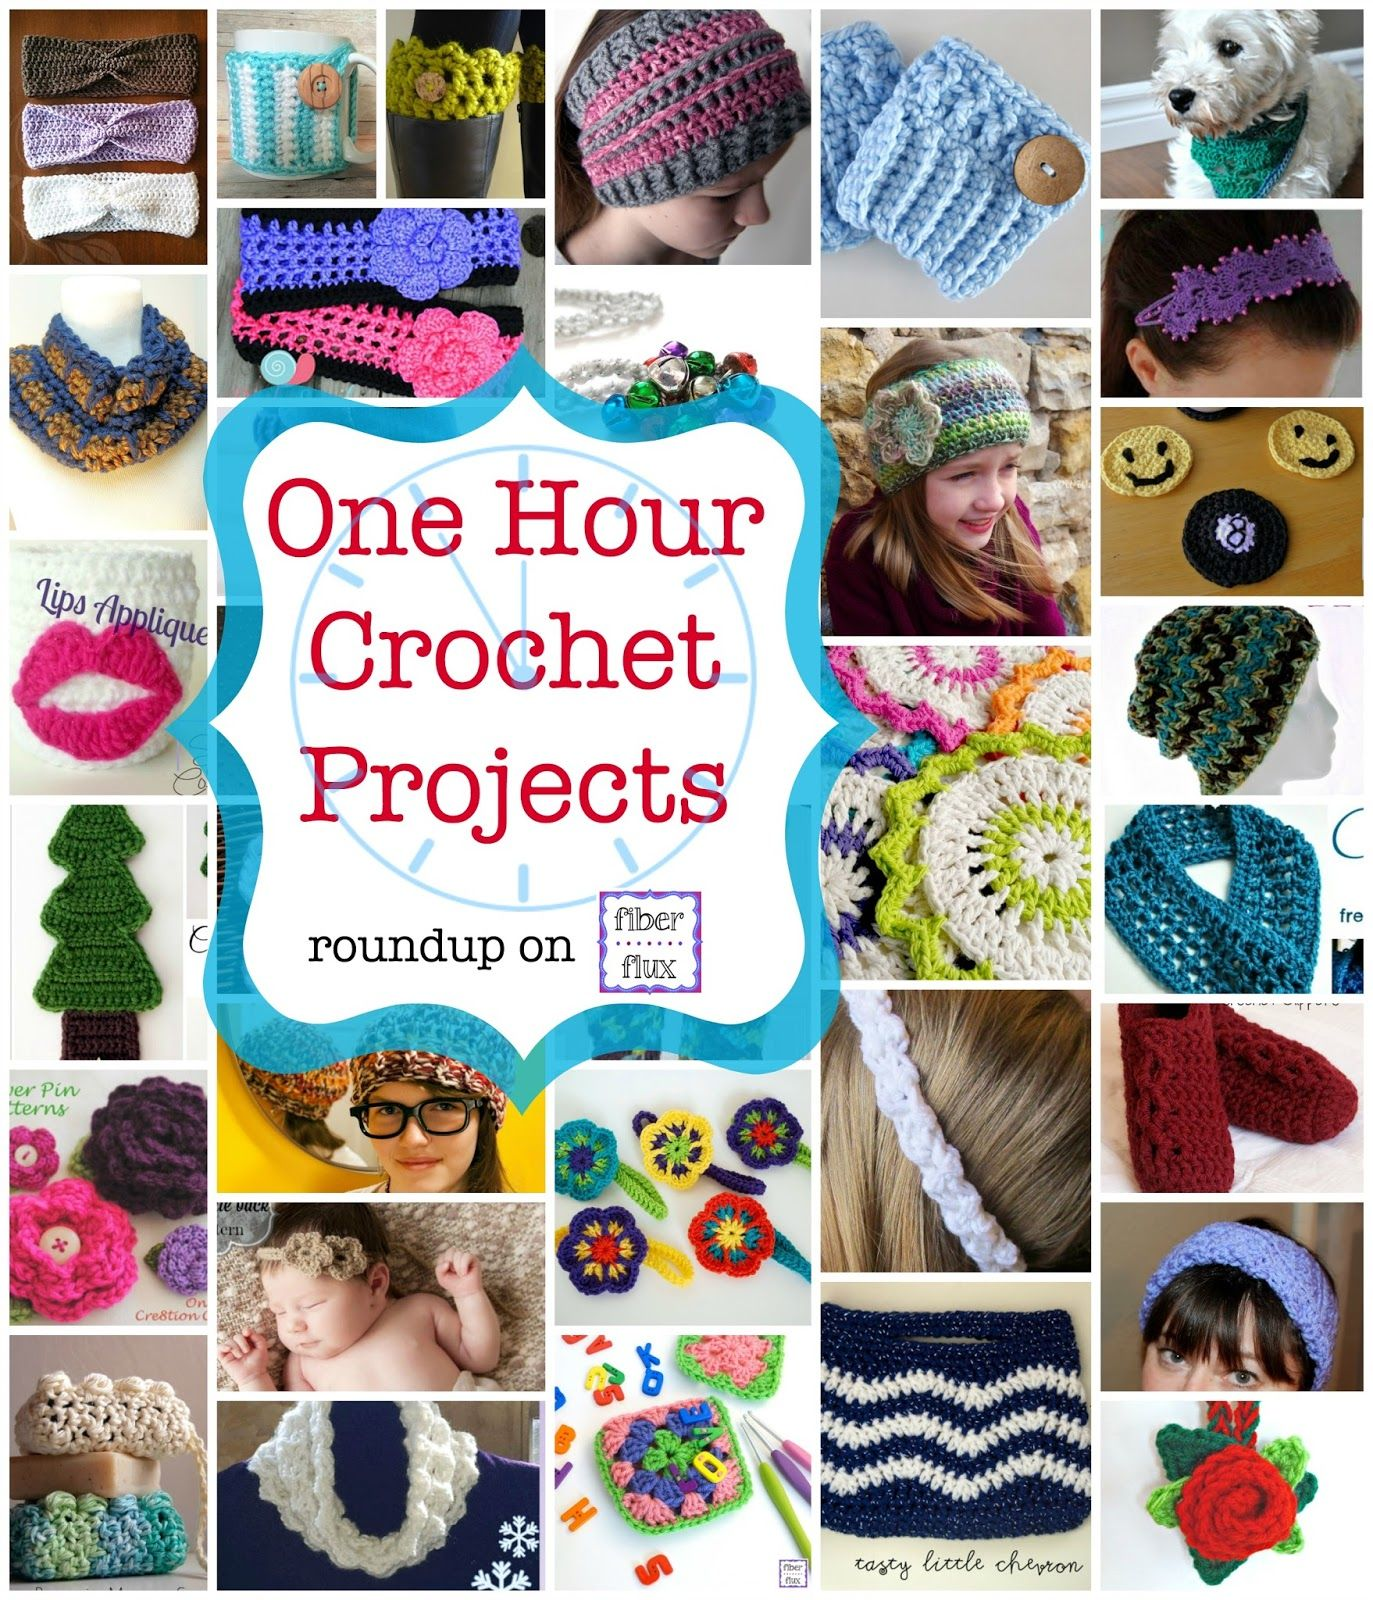 Tick Tock! 35 One Hour Crochet Projects - links to 35 crochet patterns, curated by Fiber Flux